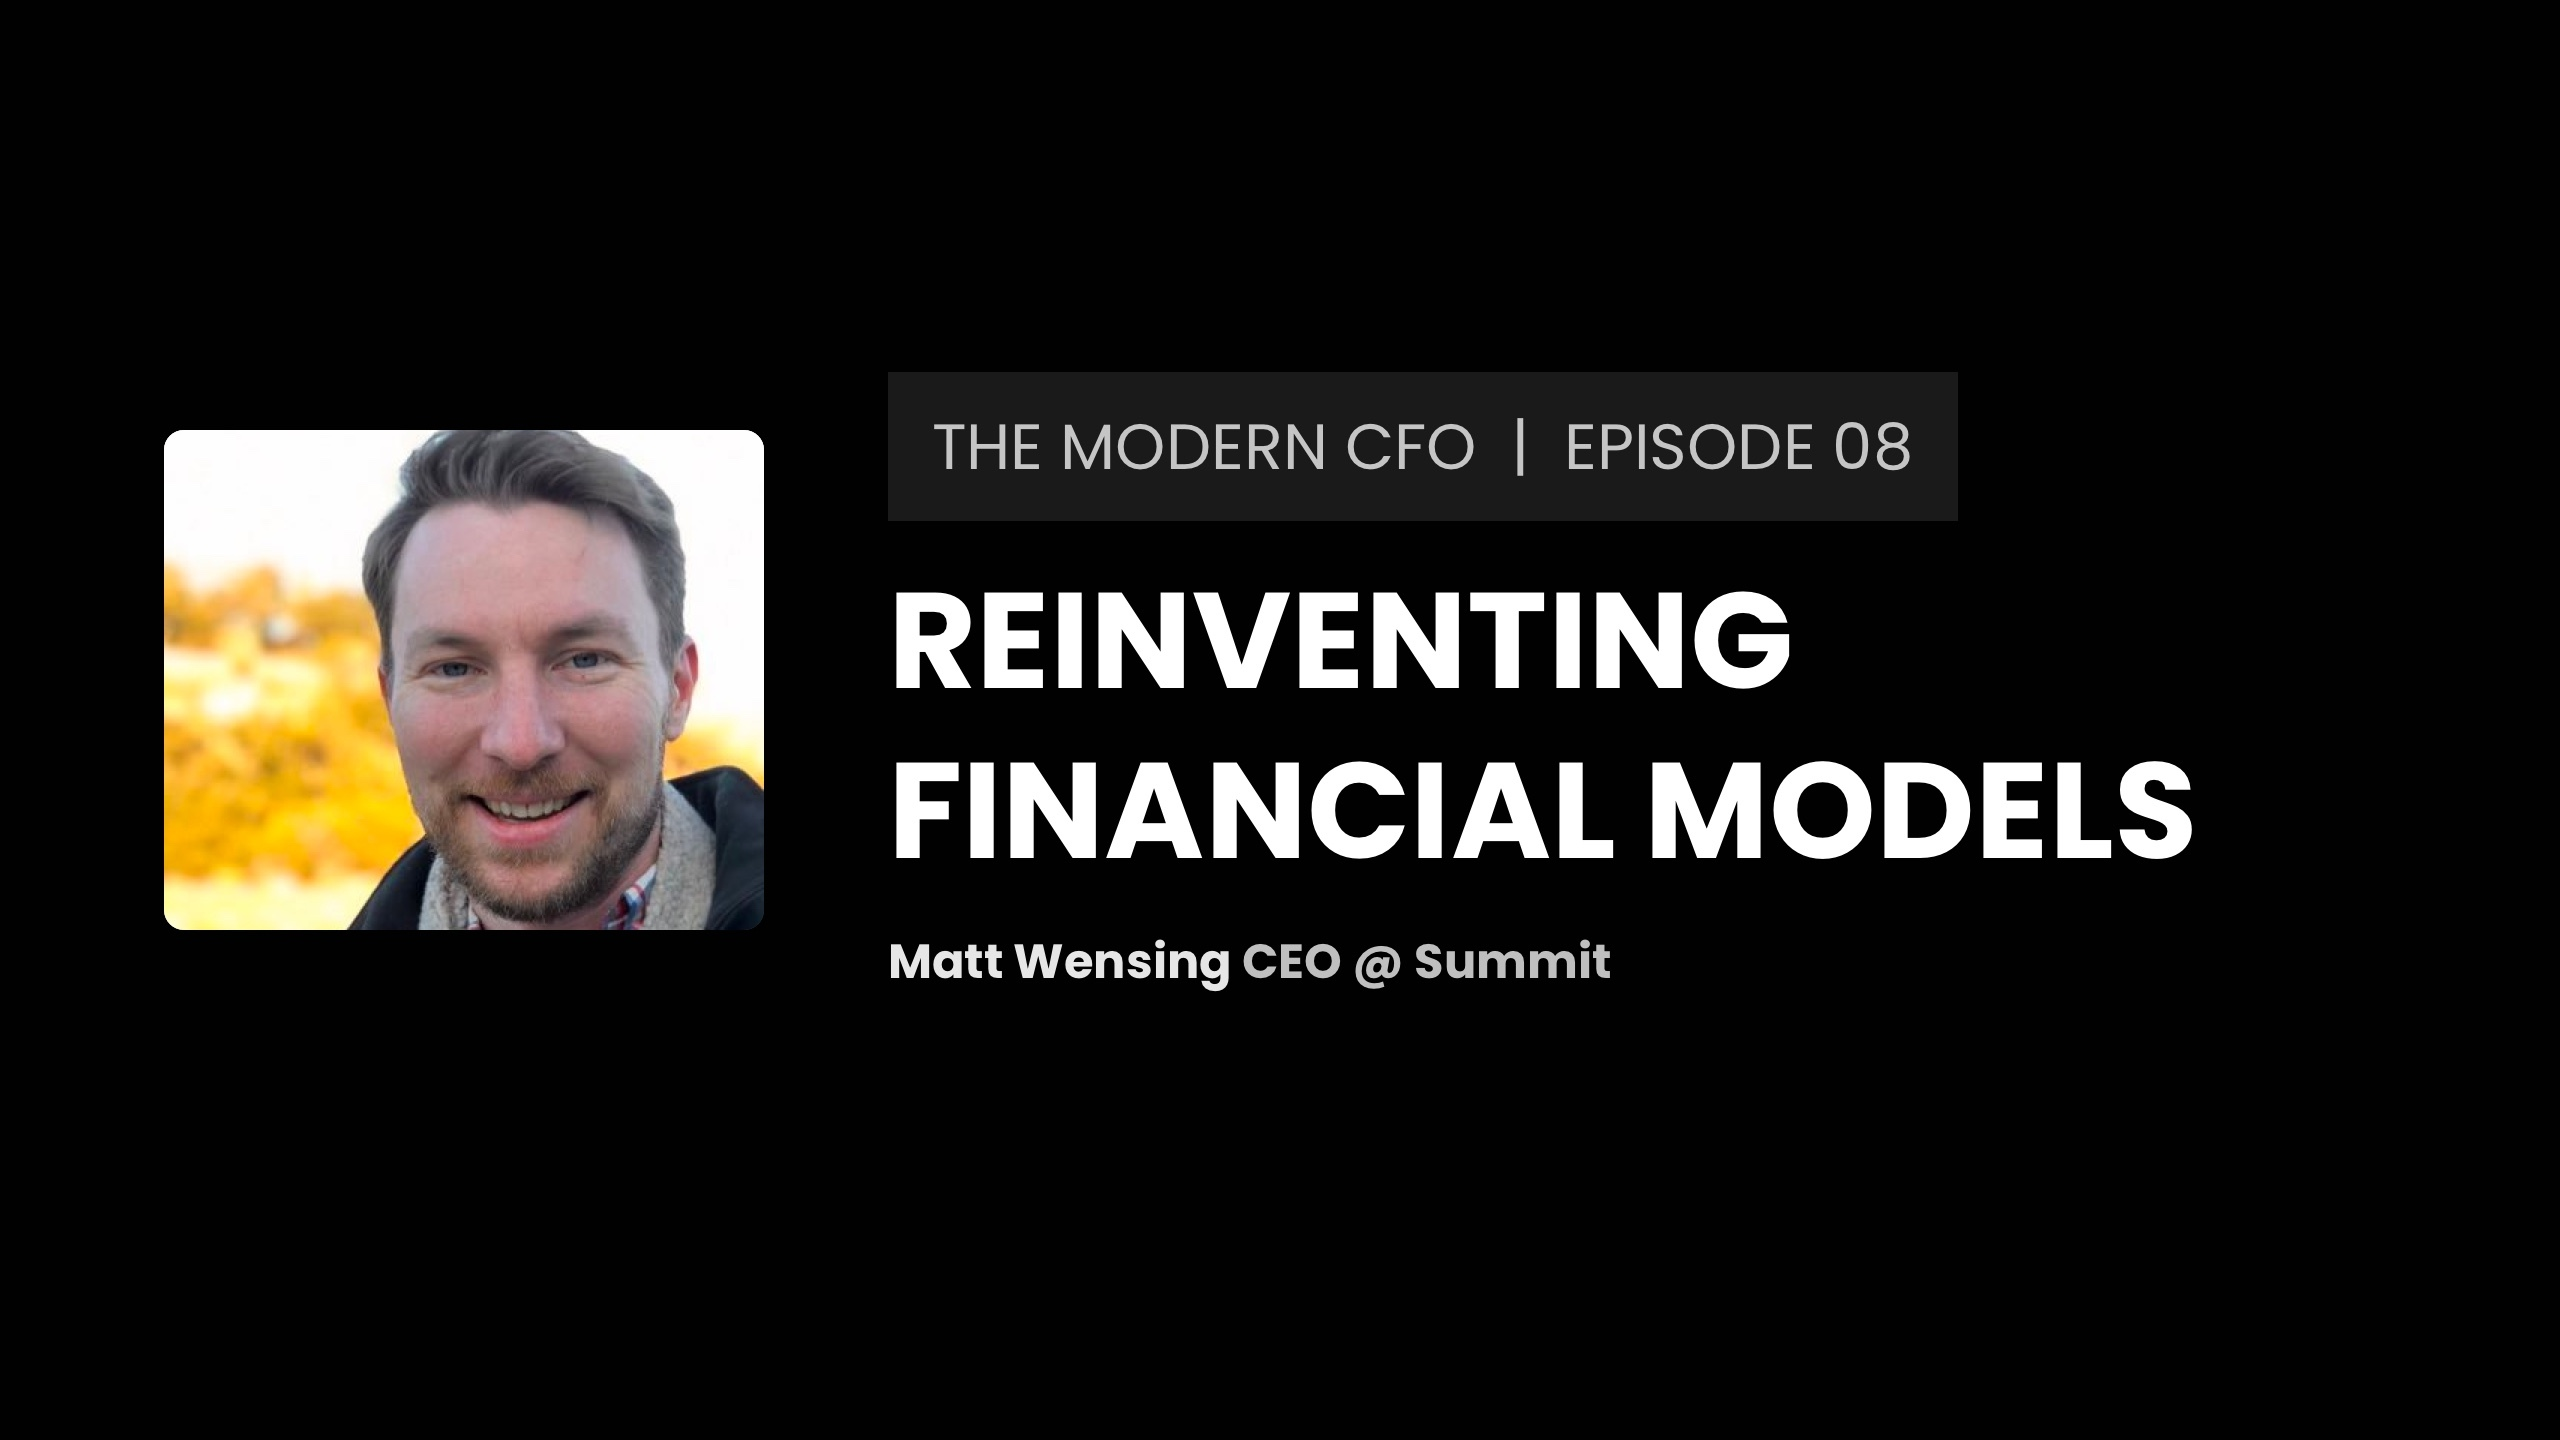 How Summit's Matt Wensing is challenging Excel spreadsheets and reinventing financial models